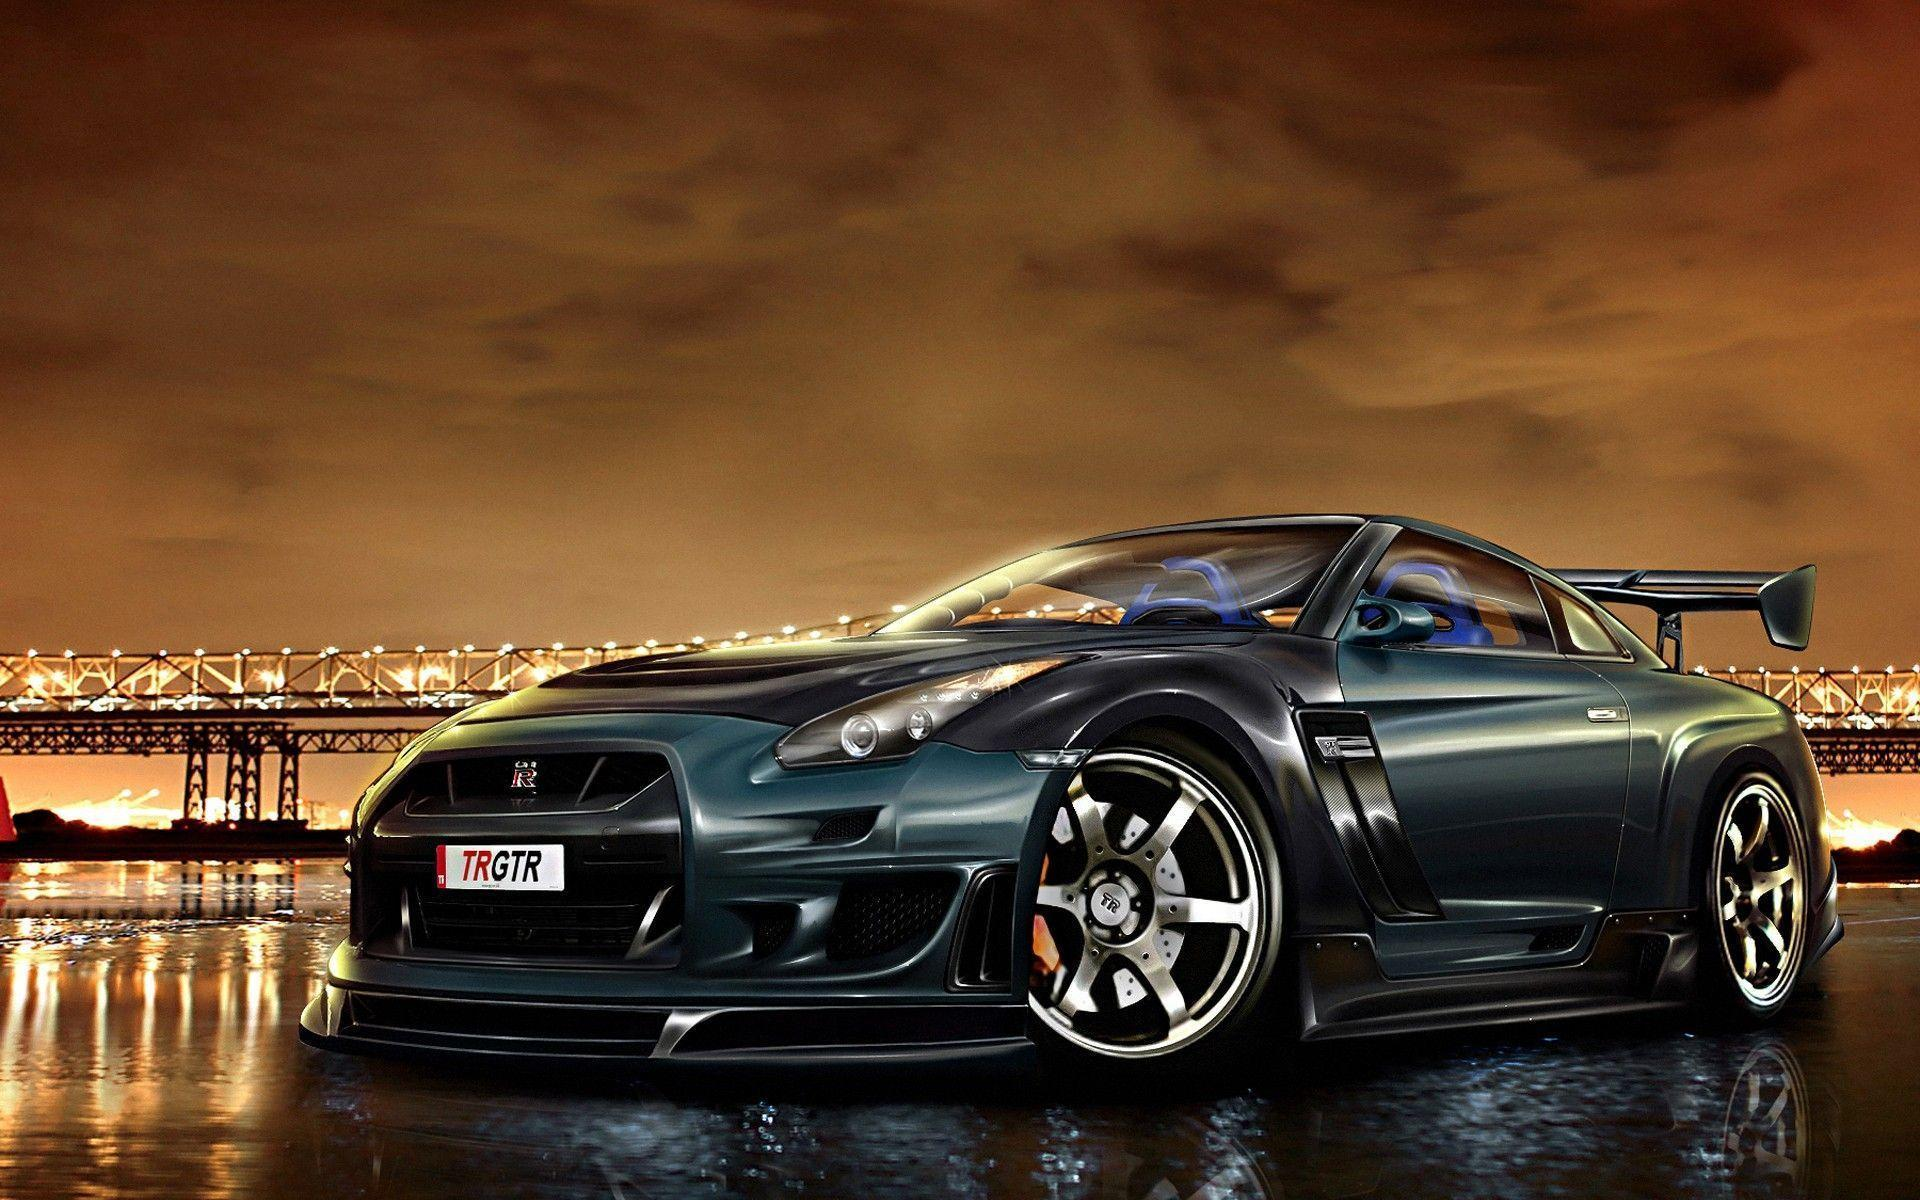 Super Cars Wallpapers, vehicles that stun the people! - MuscleDrive